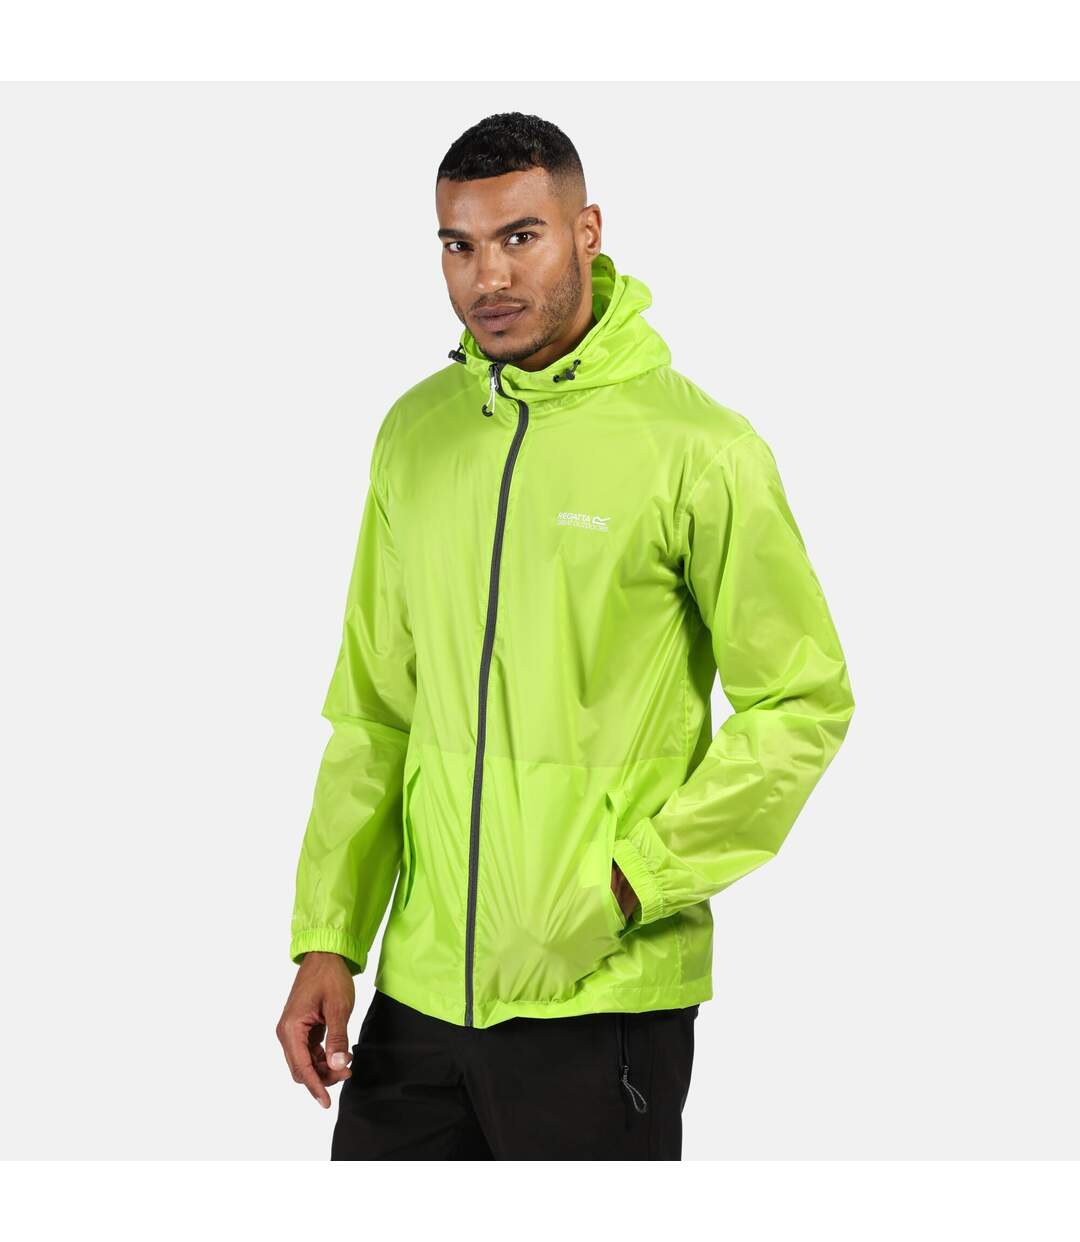 Regatta Mens Pack It III Waterproof Jacket (Electric Lime) - UTRG3512